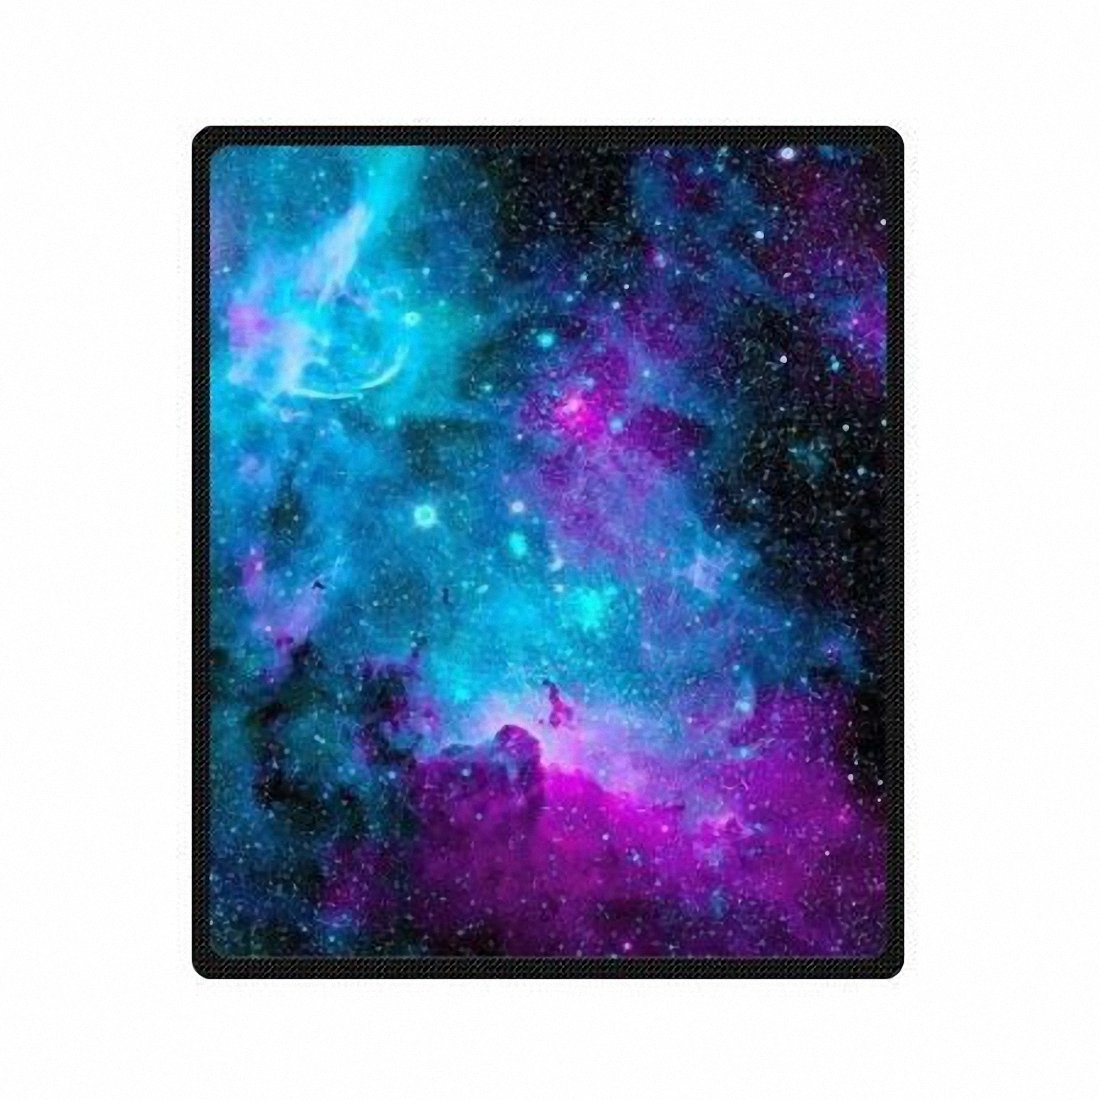 QH with Galaxy Velvet Plush Throw Blanket(Large) Super Soft and Cozy Fleece Blanket Perfect for Couch Sofa or Bed